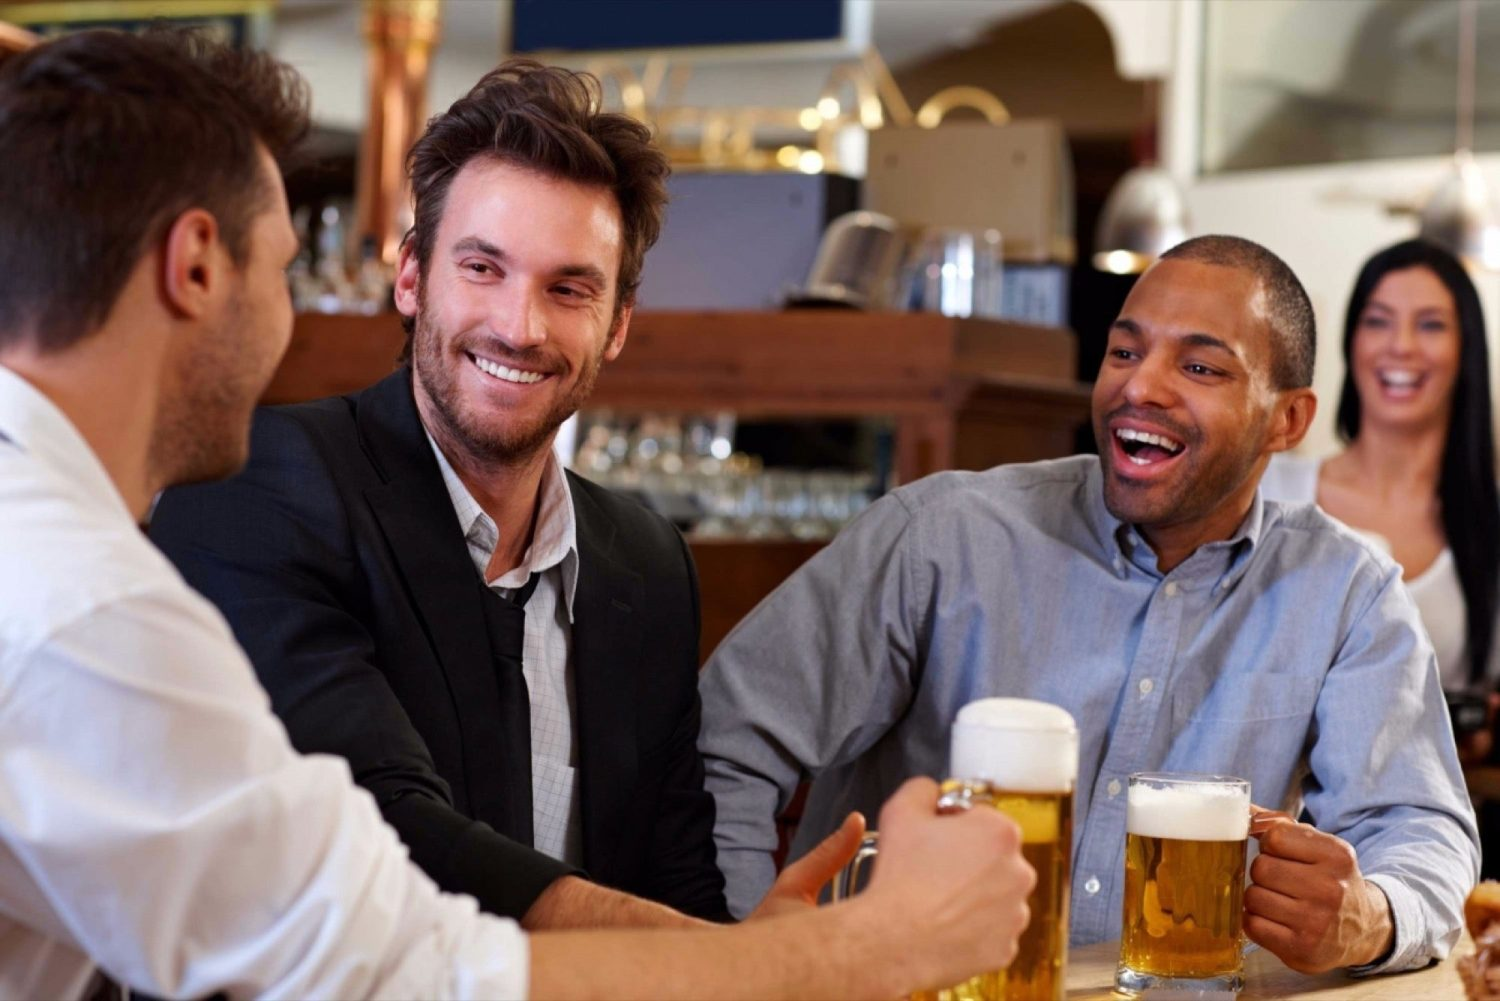 Male Bonding: 5 Fun Guy Activities To Make Your Bromance Bloom